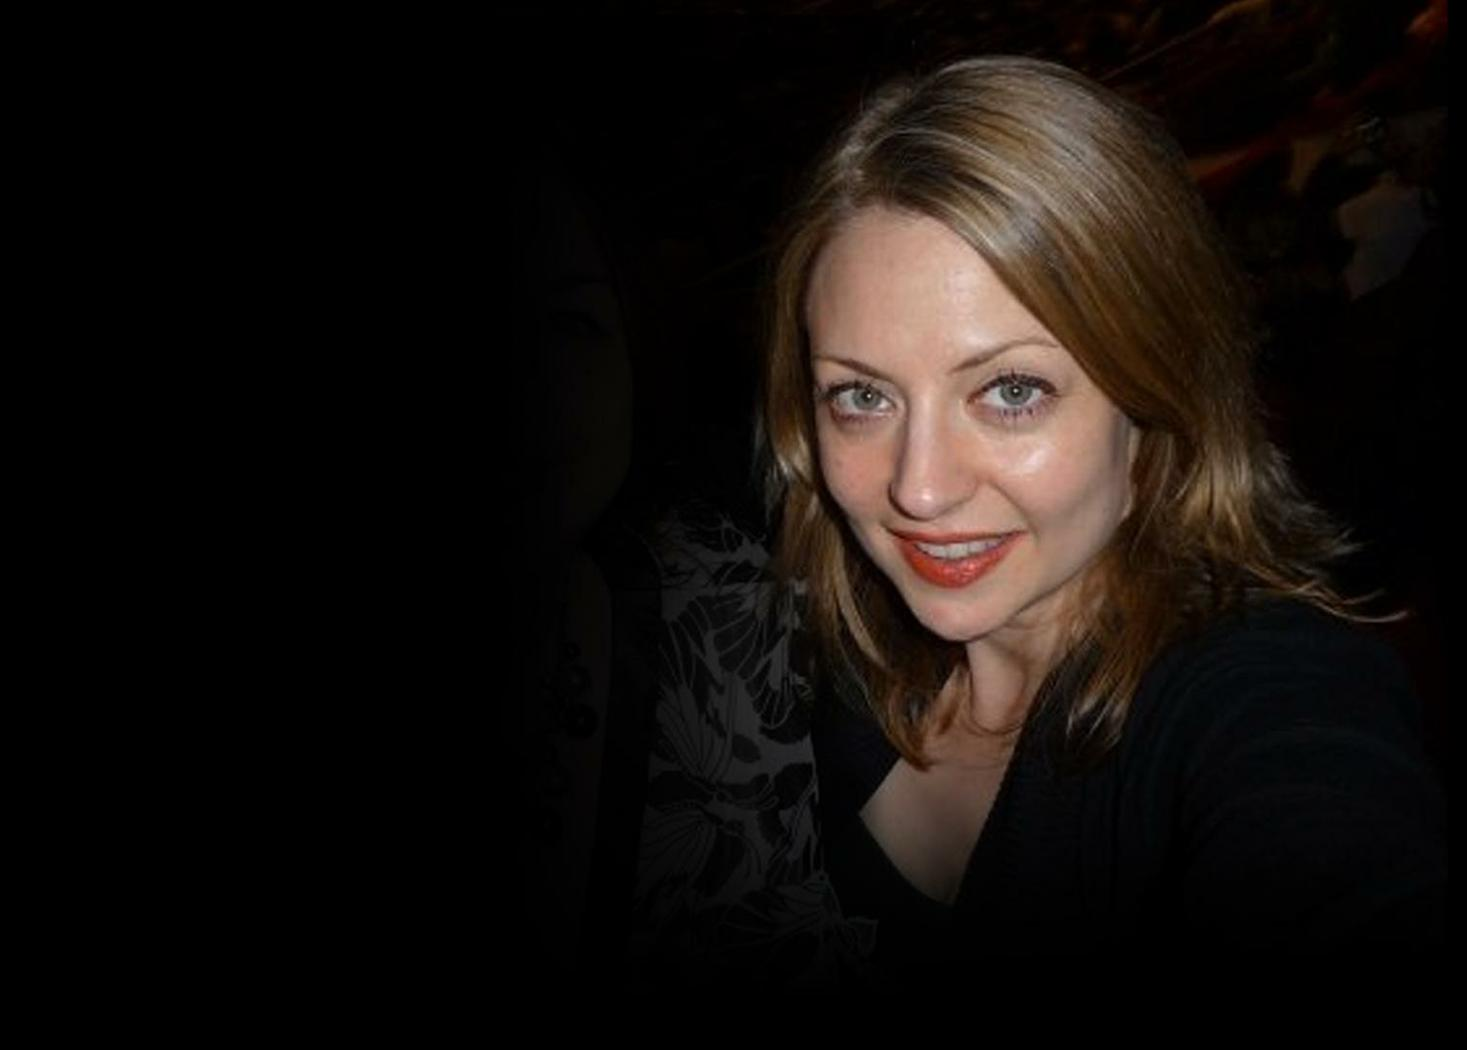 Anna Merlo - Senior Digital Activation Manager | about.me